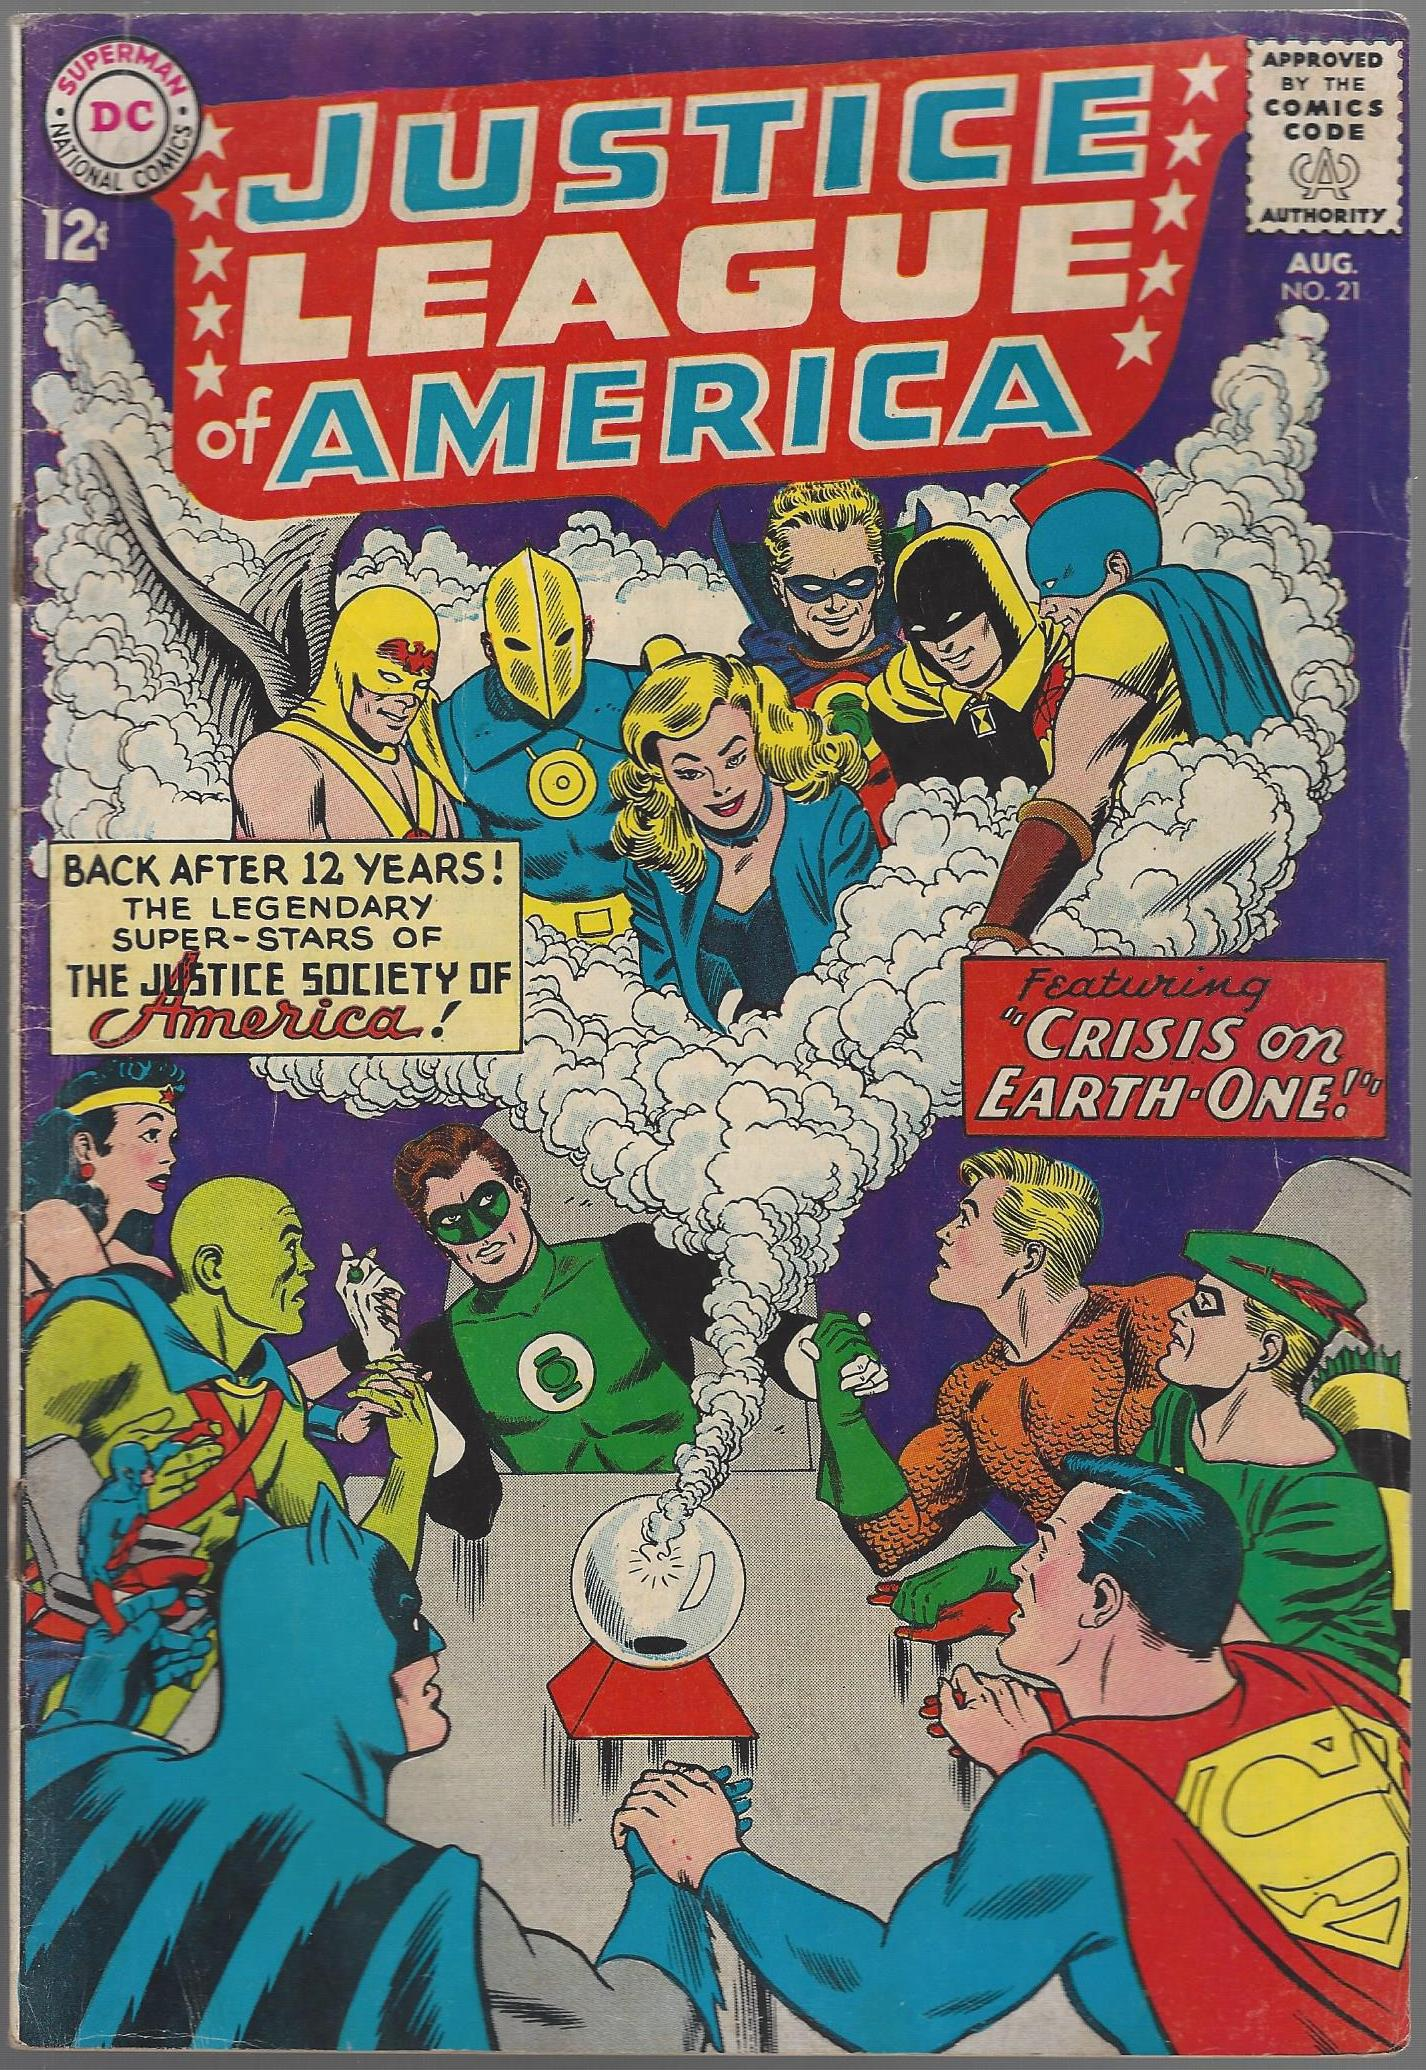 Justice League Of America V1 Issue 21 On Ebay Comic Auctions Comicspriceguide Com Forums